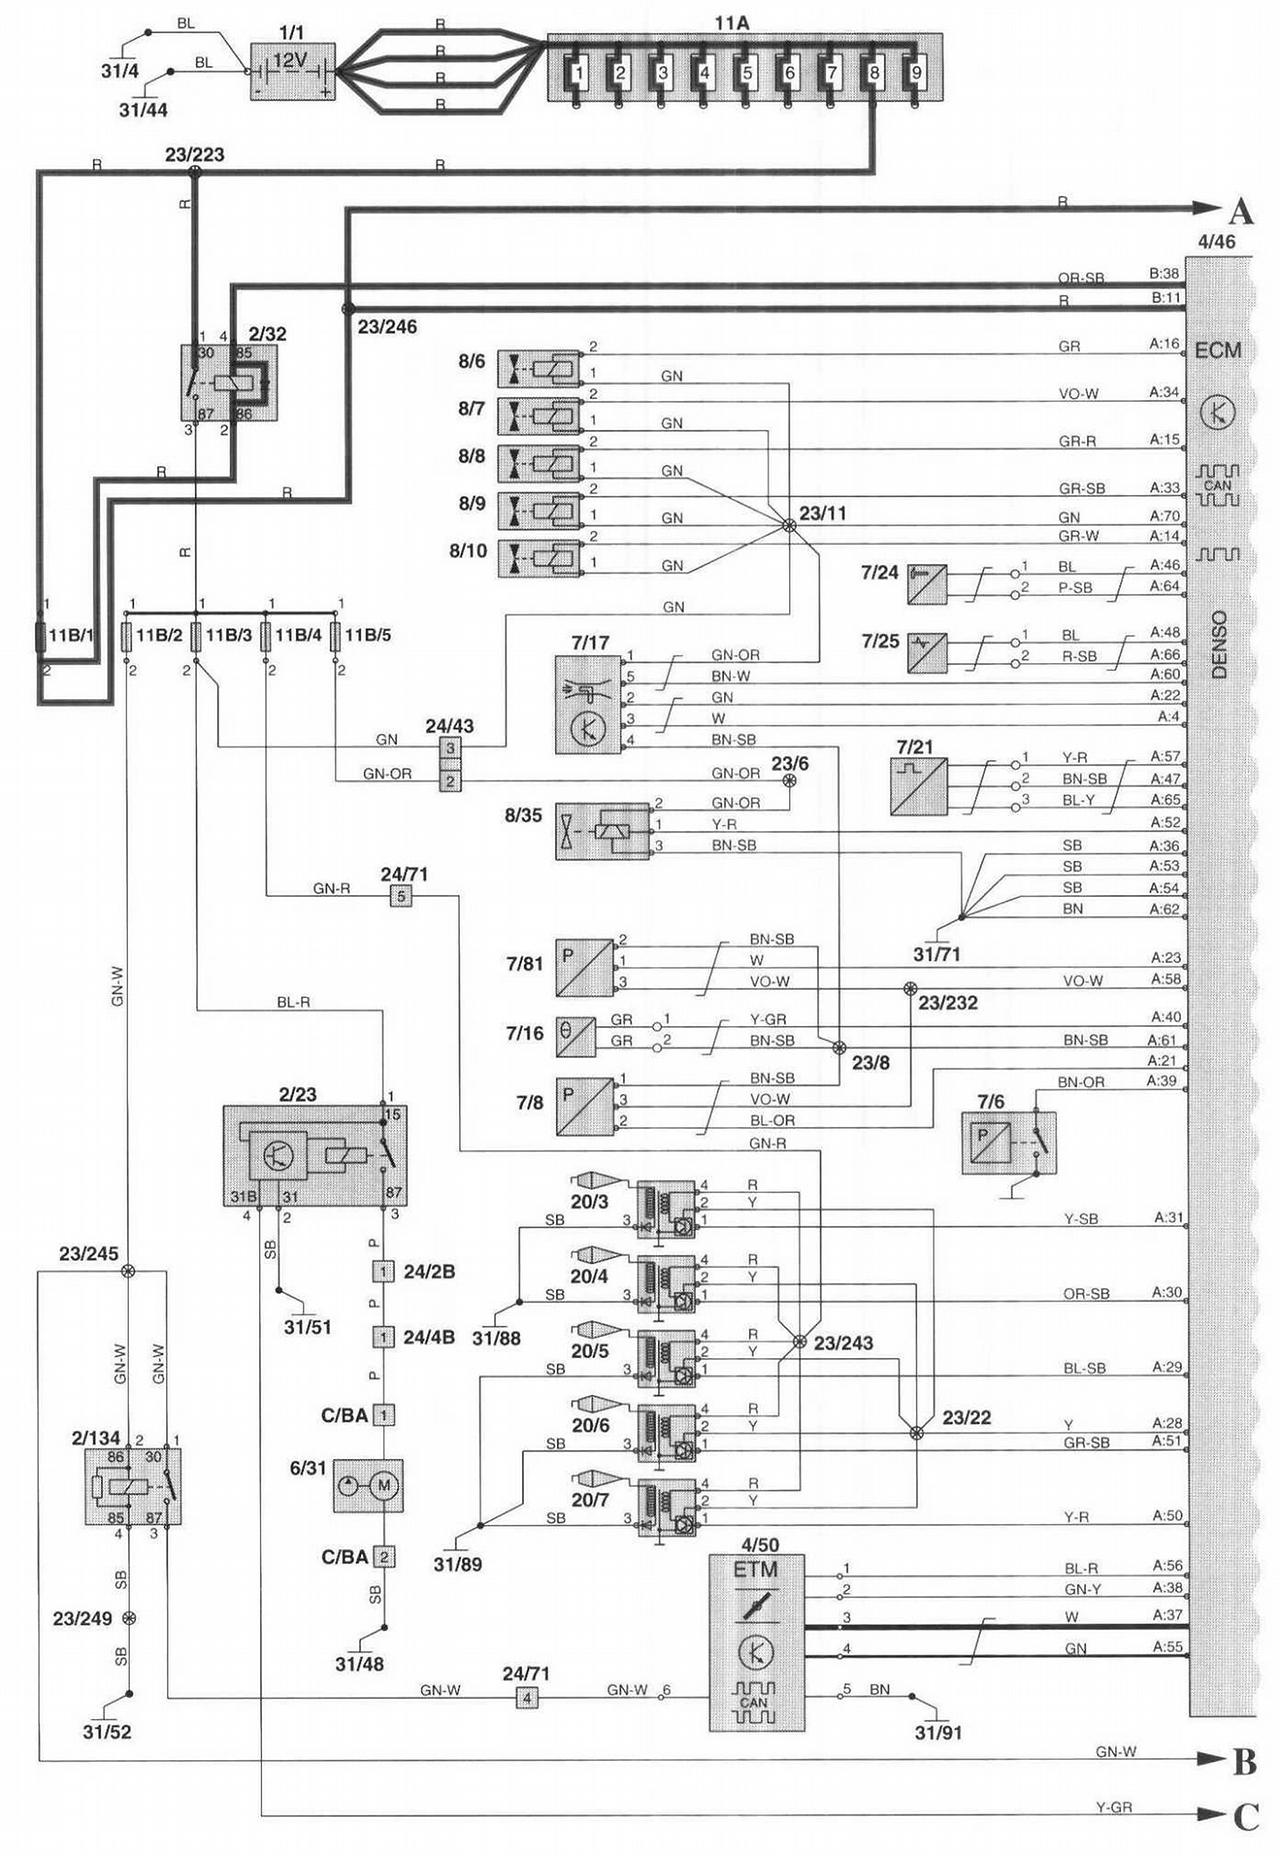 2003 volvo xc90 wiring diagram - wiring diagram prev please-temple -  please-temple.mabioxfood.fr  mabioxfood.fr